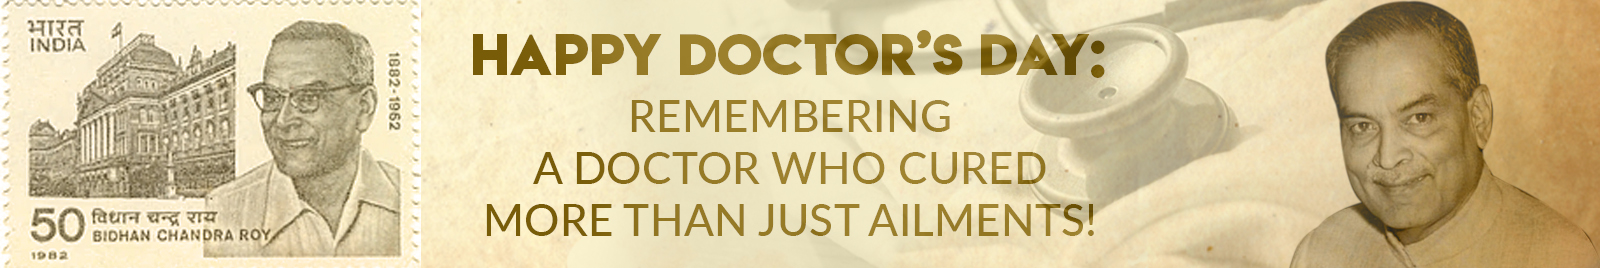 Happy Doctor's Day: Remembering a doctor who cured more than just ailments!